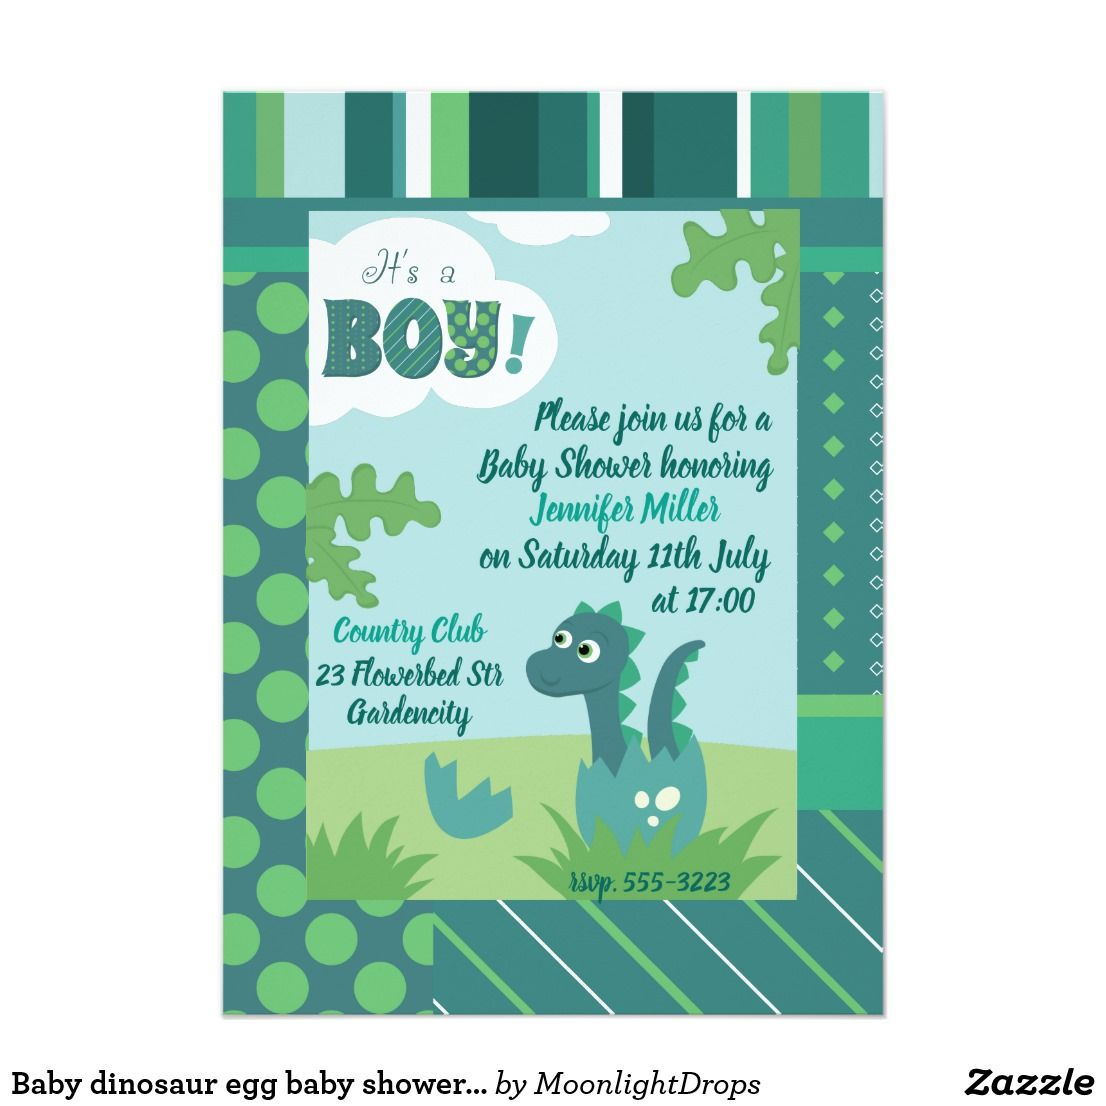 Dinosaur Egg Baby Shower Invitations - Best Dinosaur Images 2018